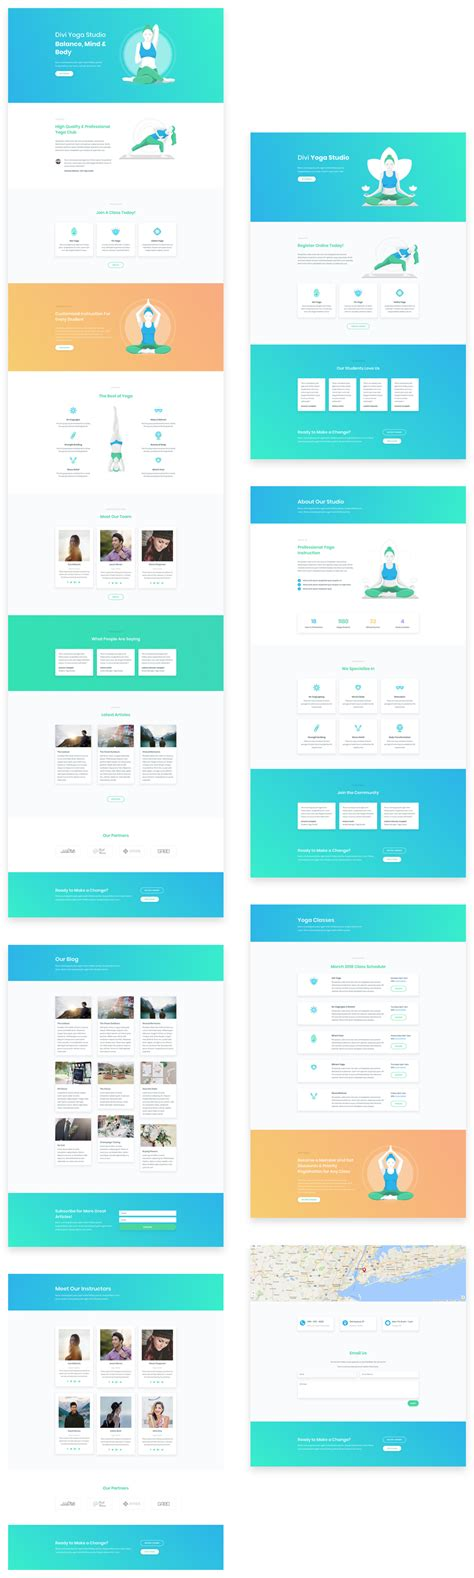 download layout divi download a free inspiring yoga layout pack for divi